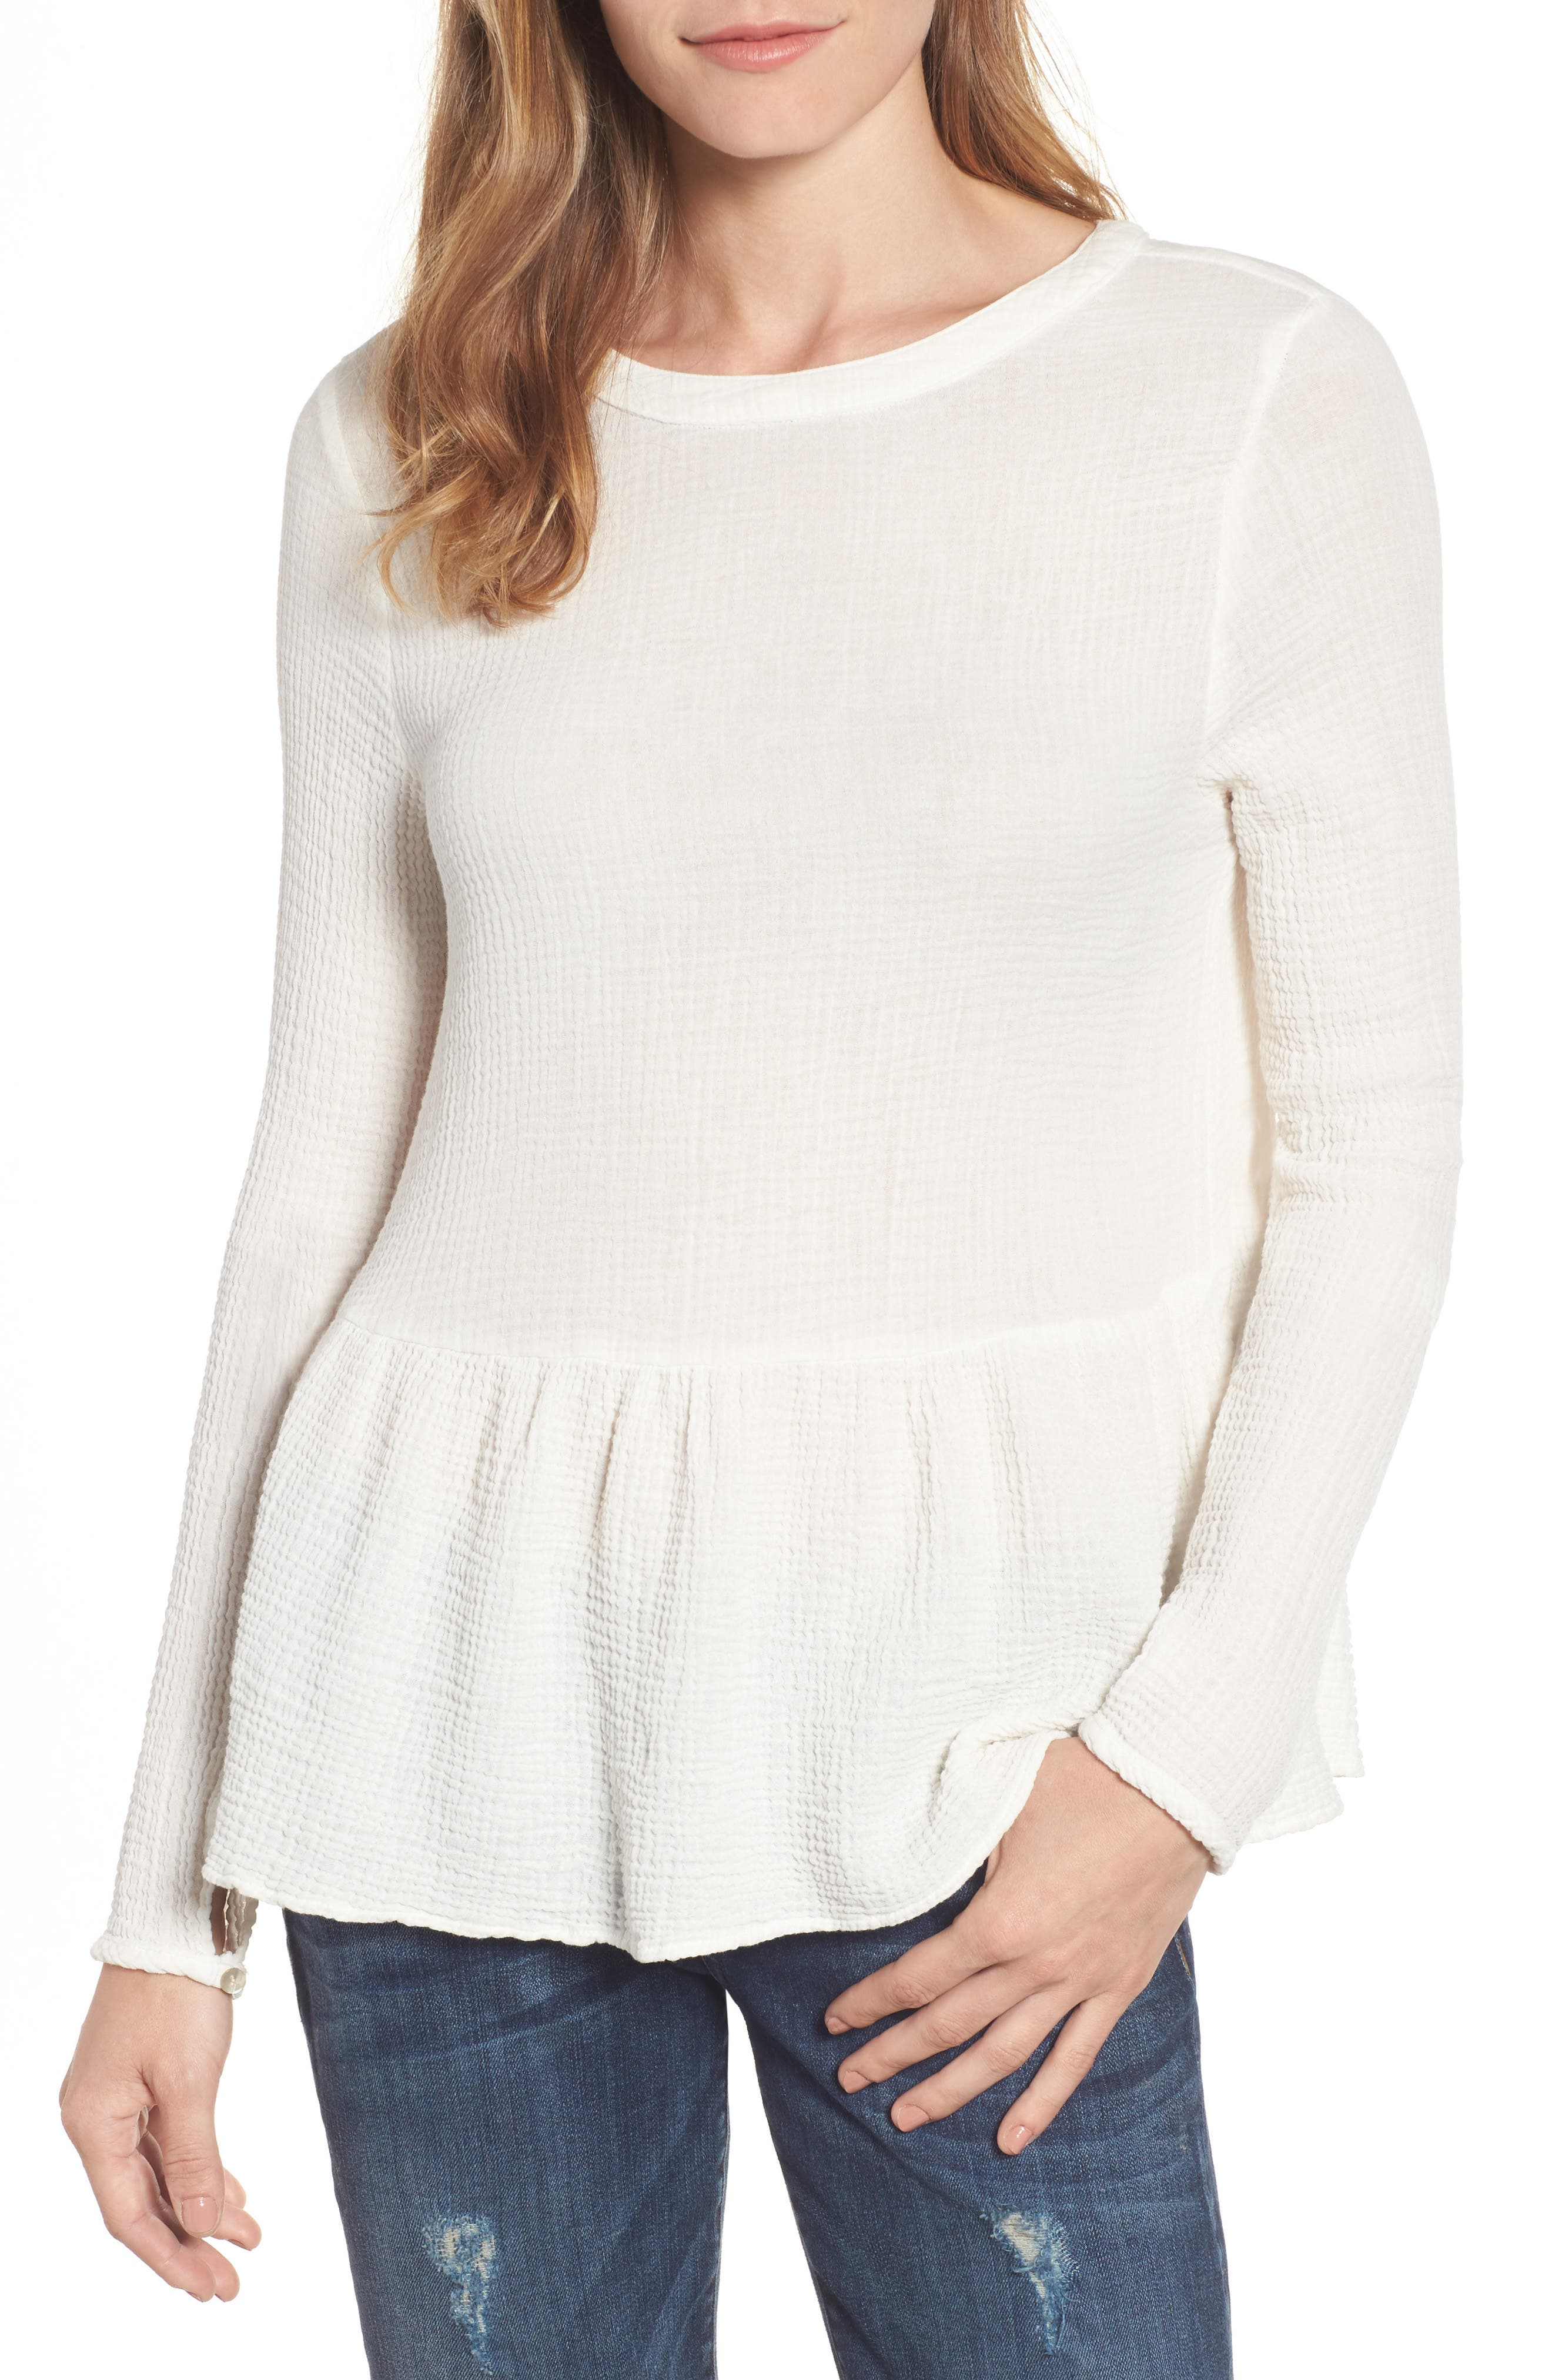 Velvet by Graham & Spencer Bubble Gauze Peplum Blouse